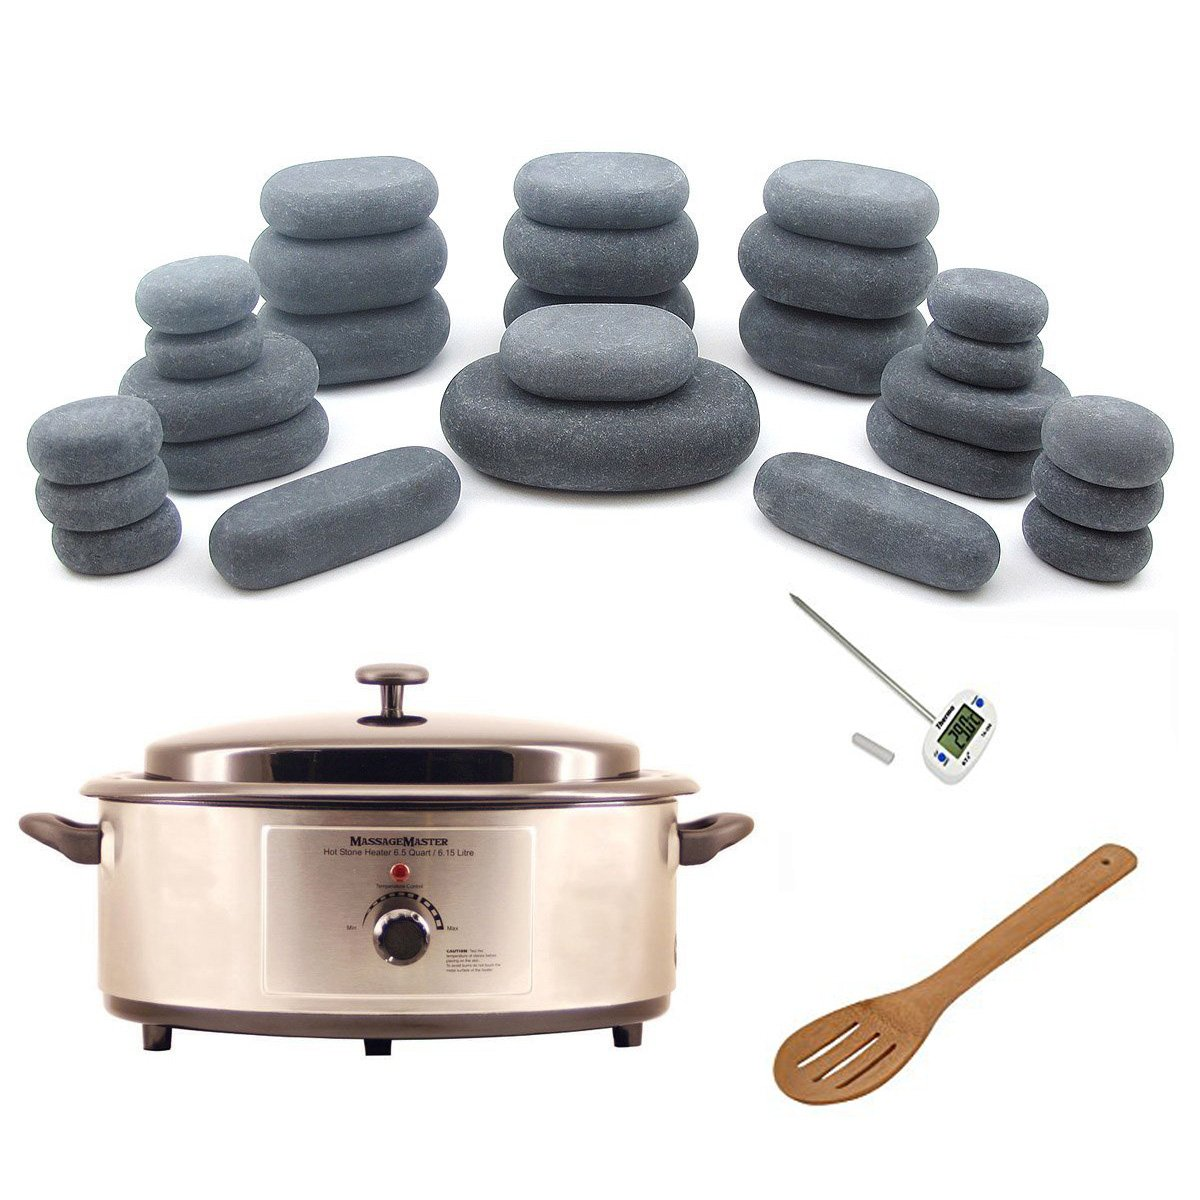 Hot Stone Warmer Zabrina Massage Stones Warmer HOT STONE MASSAGE KIT: 27 Basalt Stones + 6.5 Quart Hot Stone Heater by Zabrina